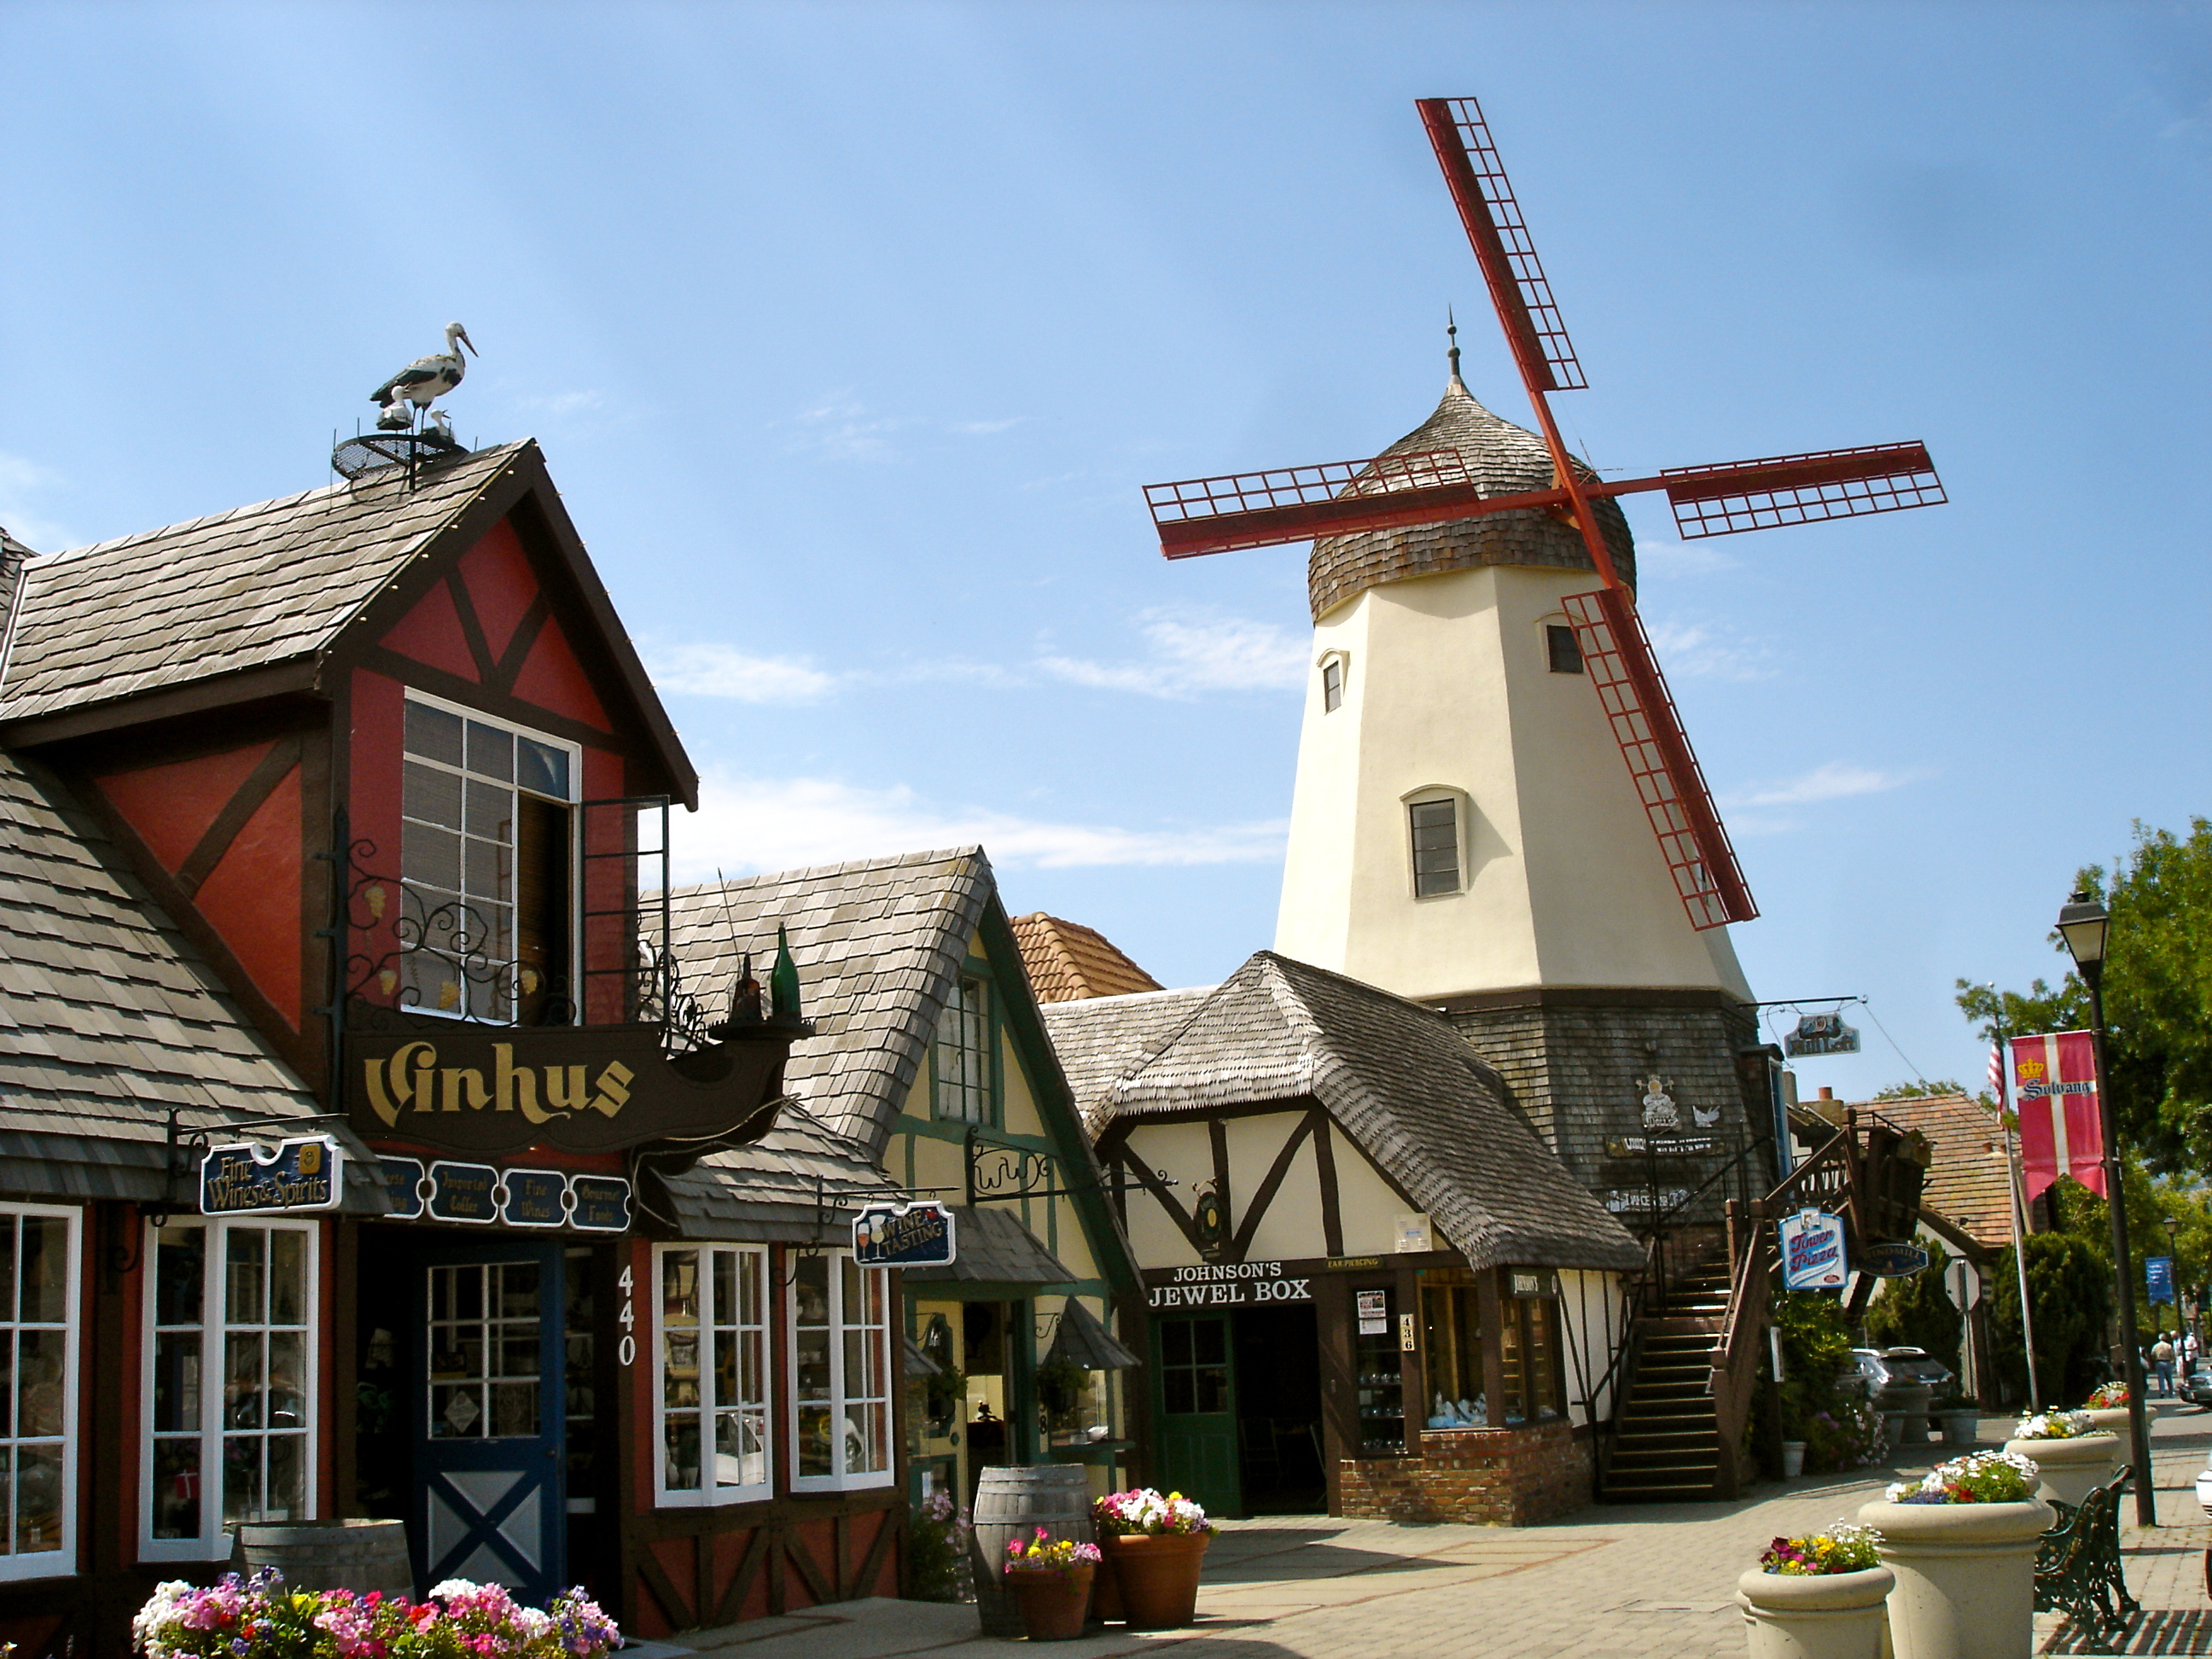 solvang girls Looking for a solvang hotel 2-star hotels from $80 users have found solvang hotels for this weekend for as low as $164 per night especially for a girls trip.